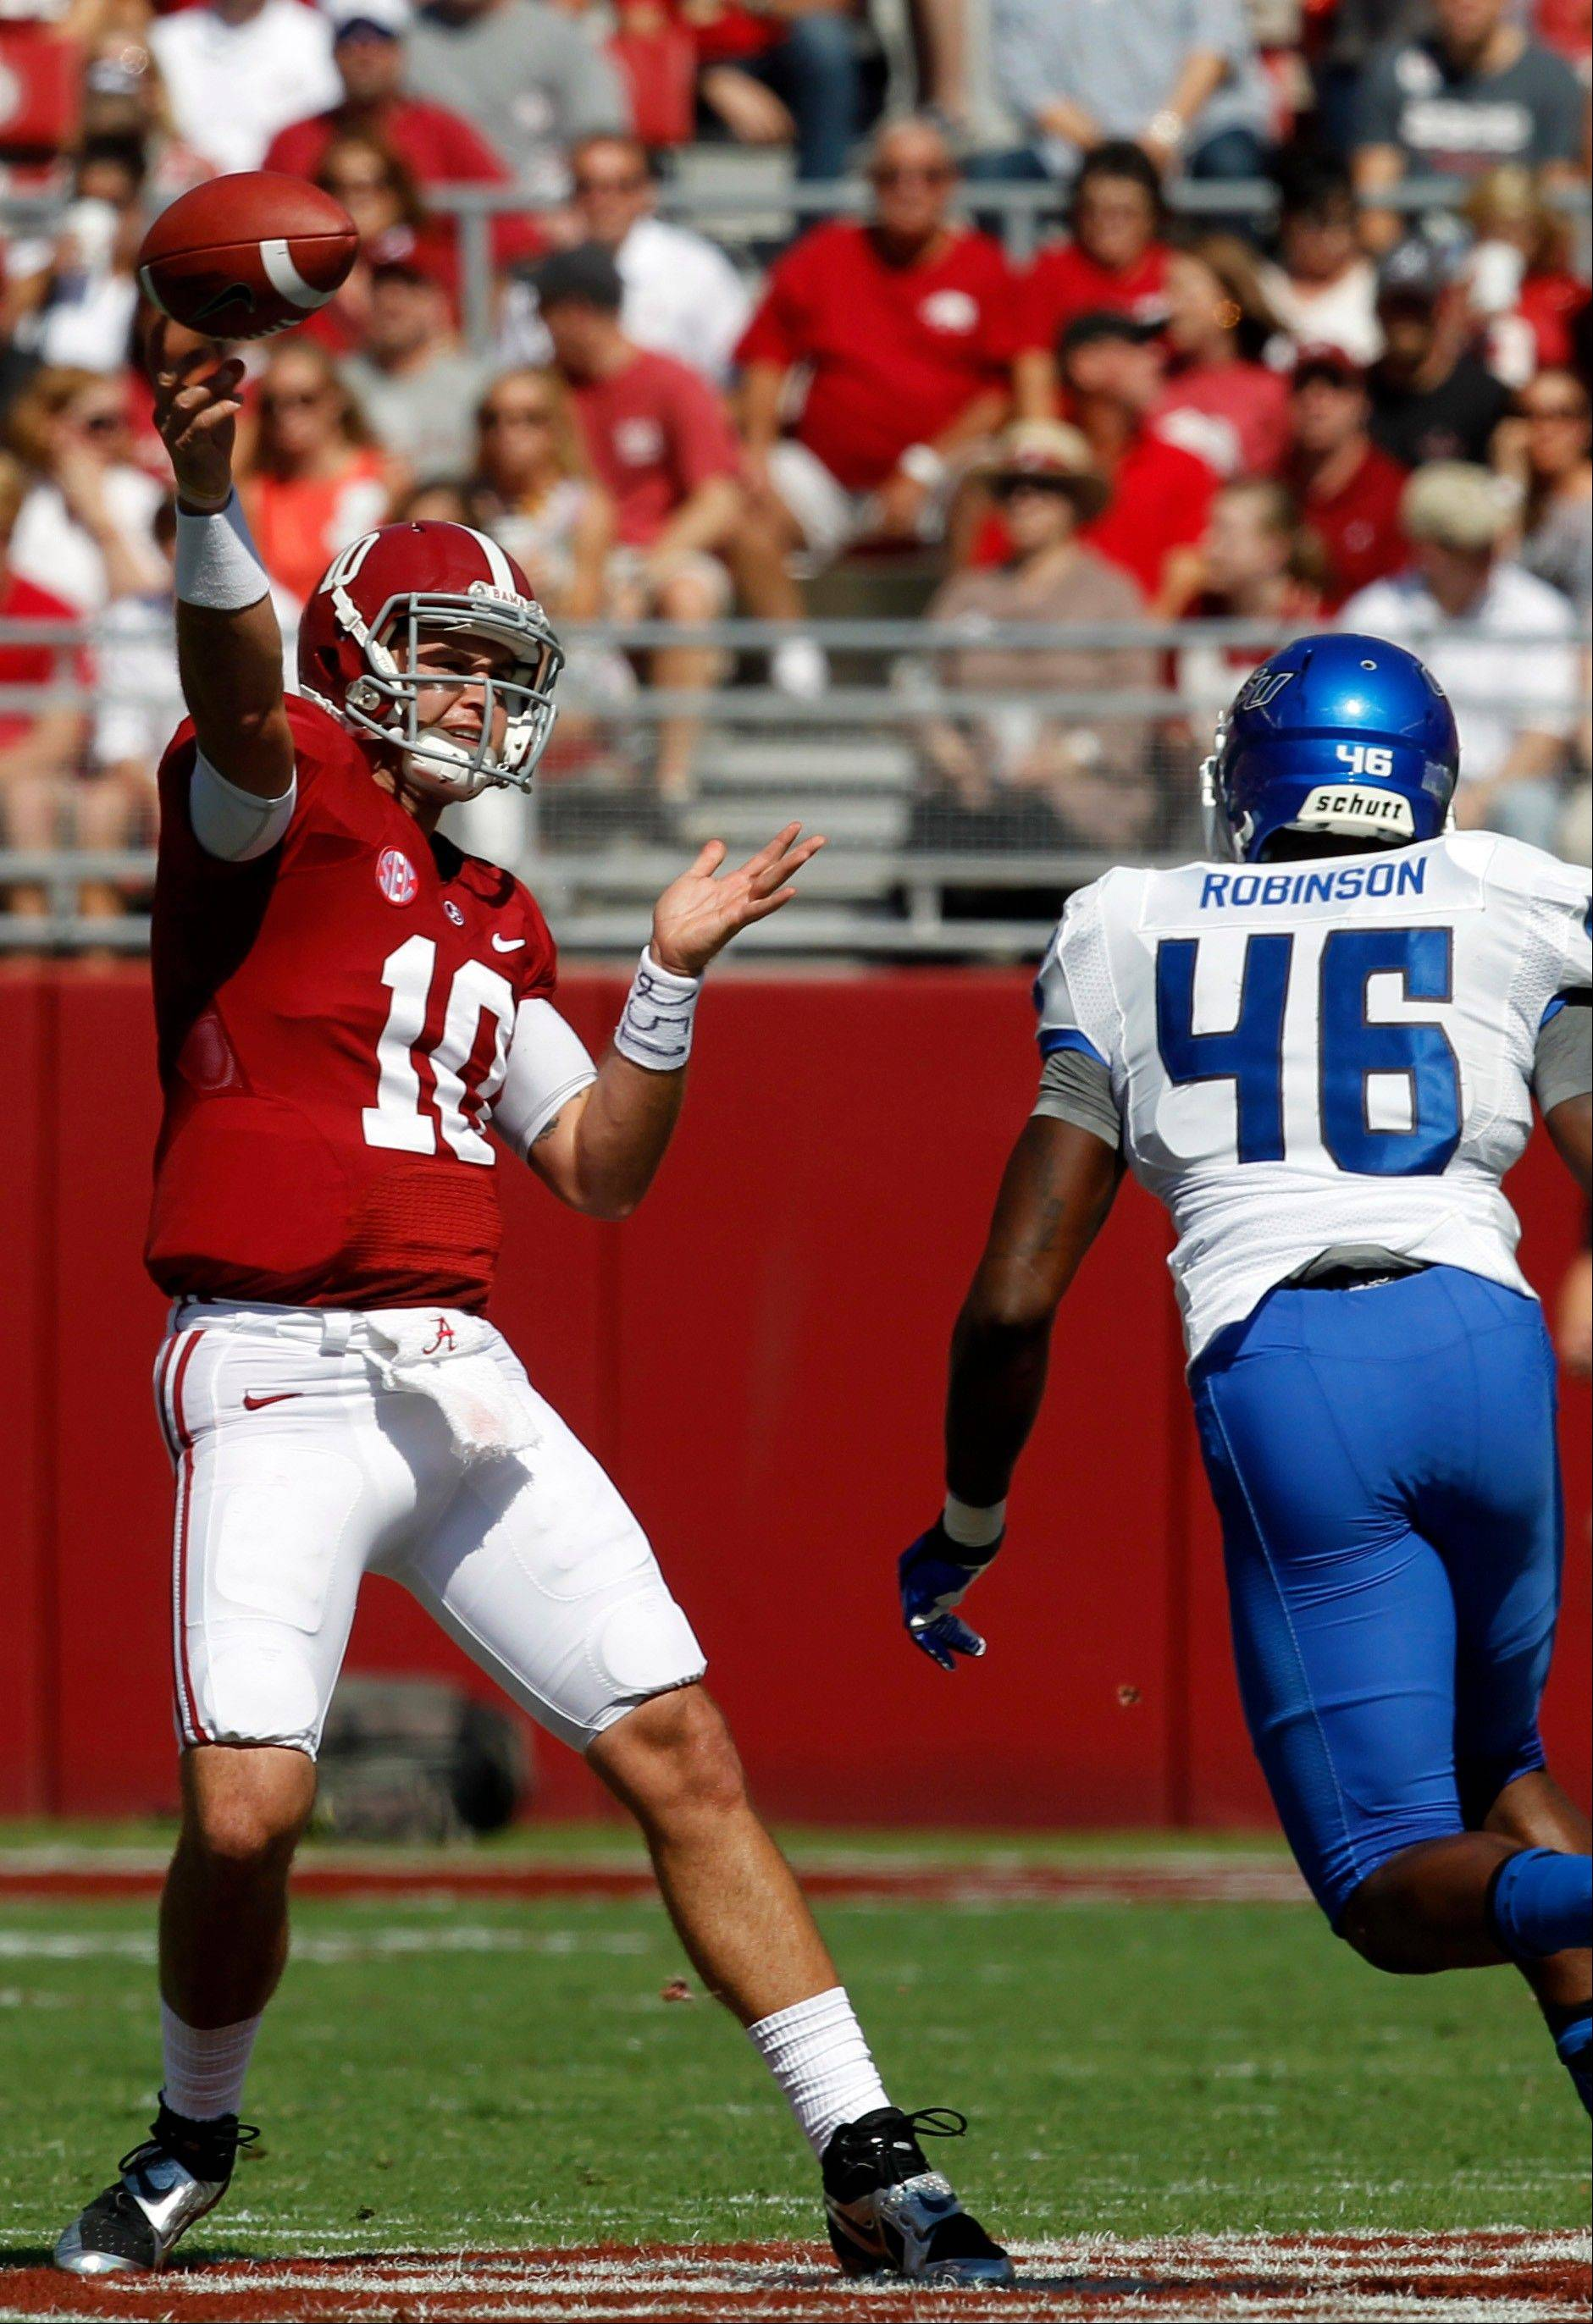 Alabama quarterback AJ McCarron (10) throws a pass while under pressure from Georgia State linebacker Jarrell Robinson (46) during the first half of an NCAA college football game on Saturday, Oct. 5, 2013, in Tuscaloosa, Ala.